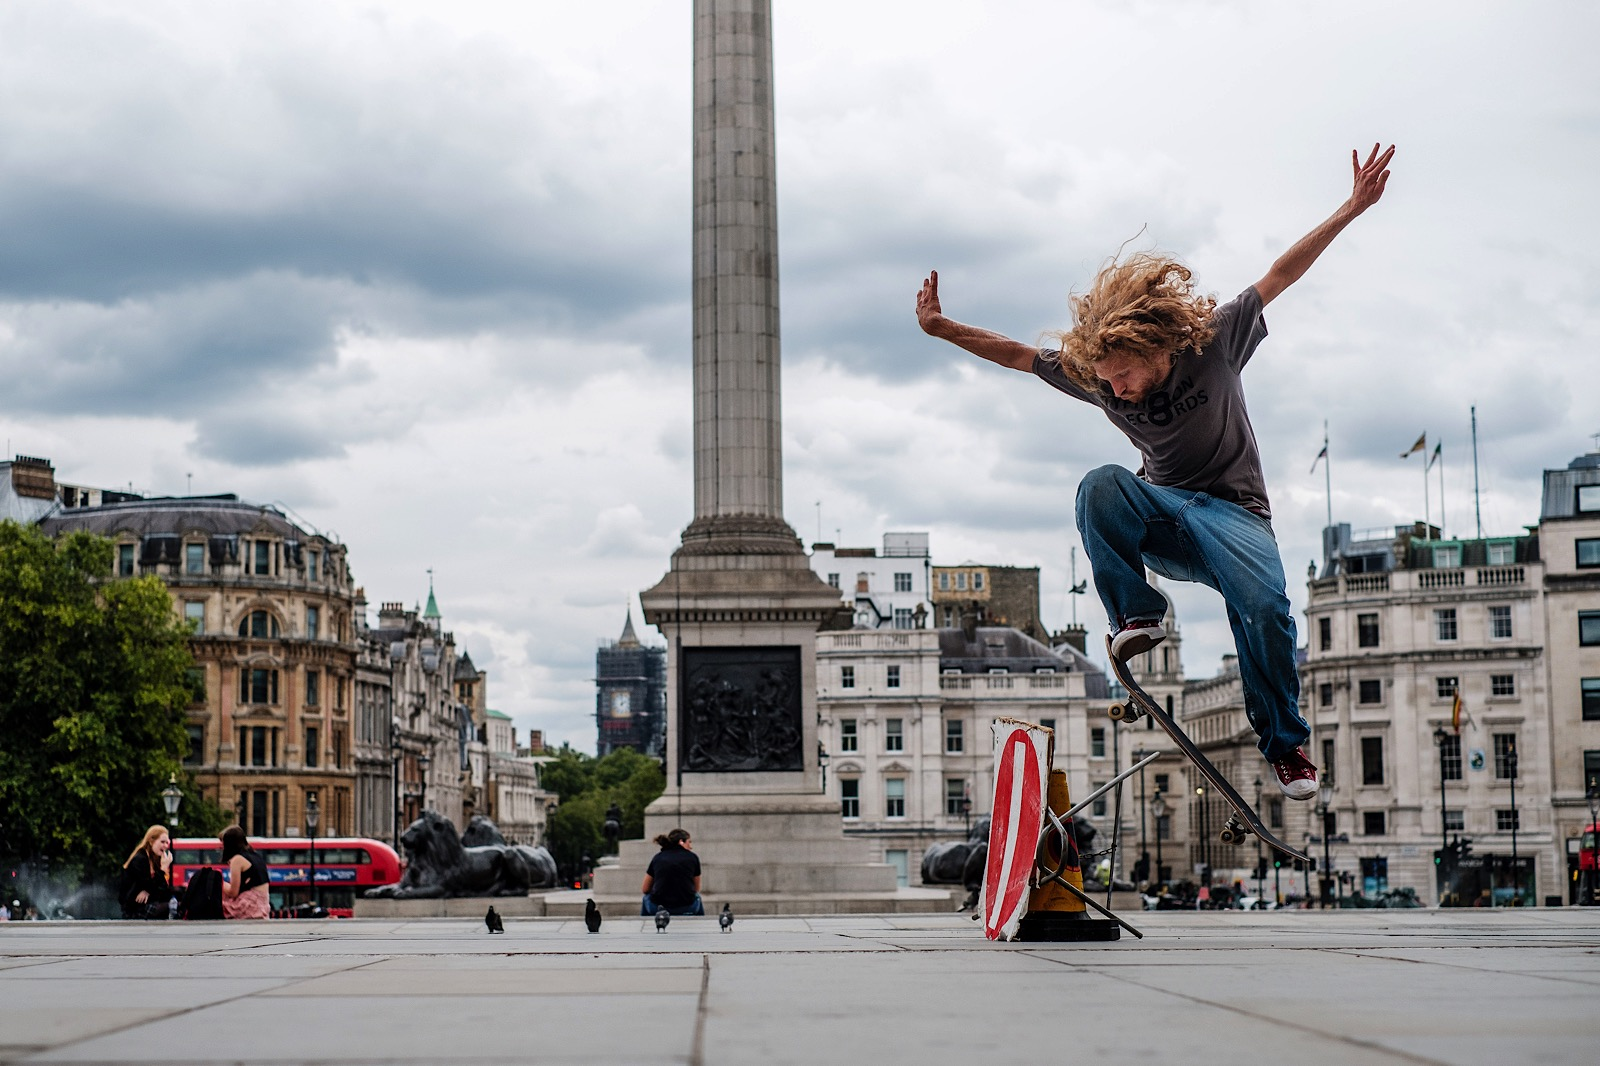 London's Trafalgar Square with skateboarder doing a jump mid air